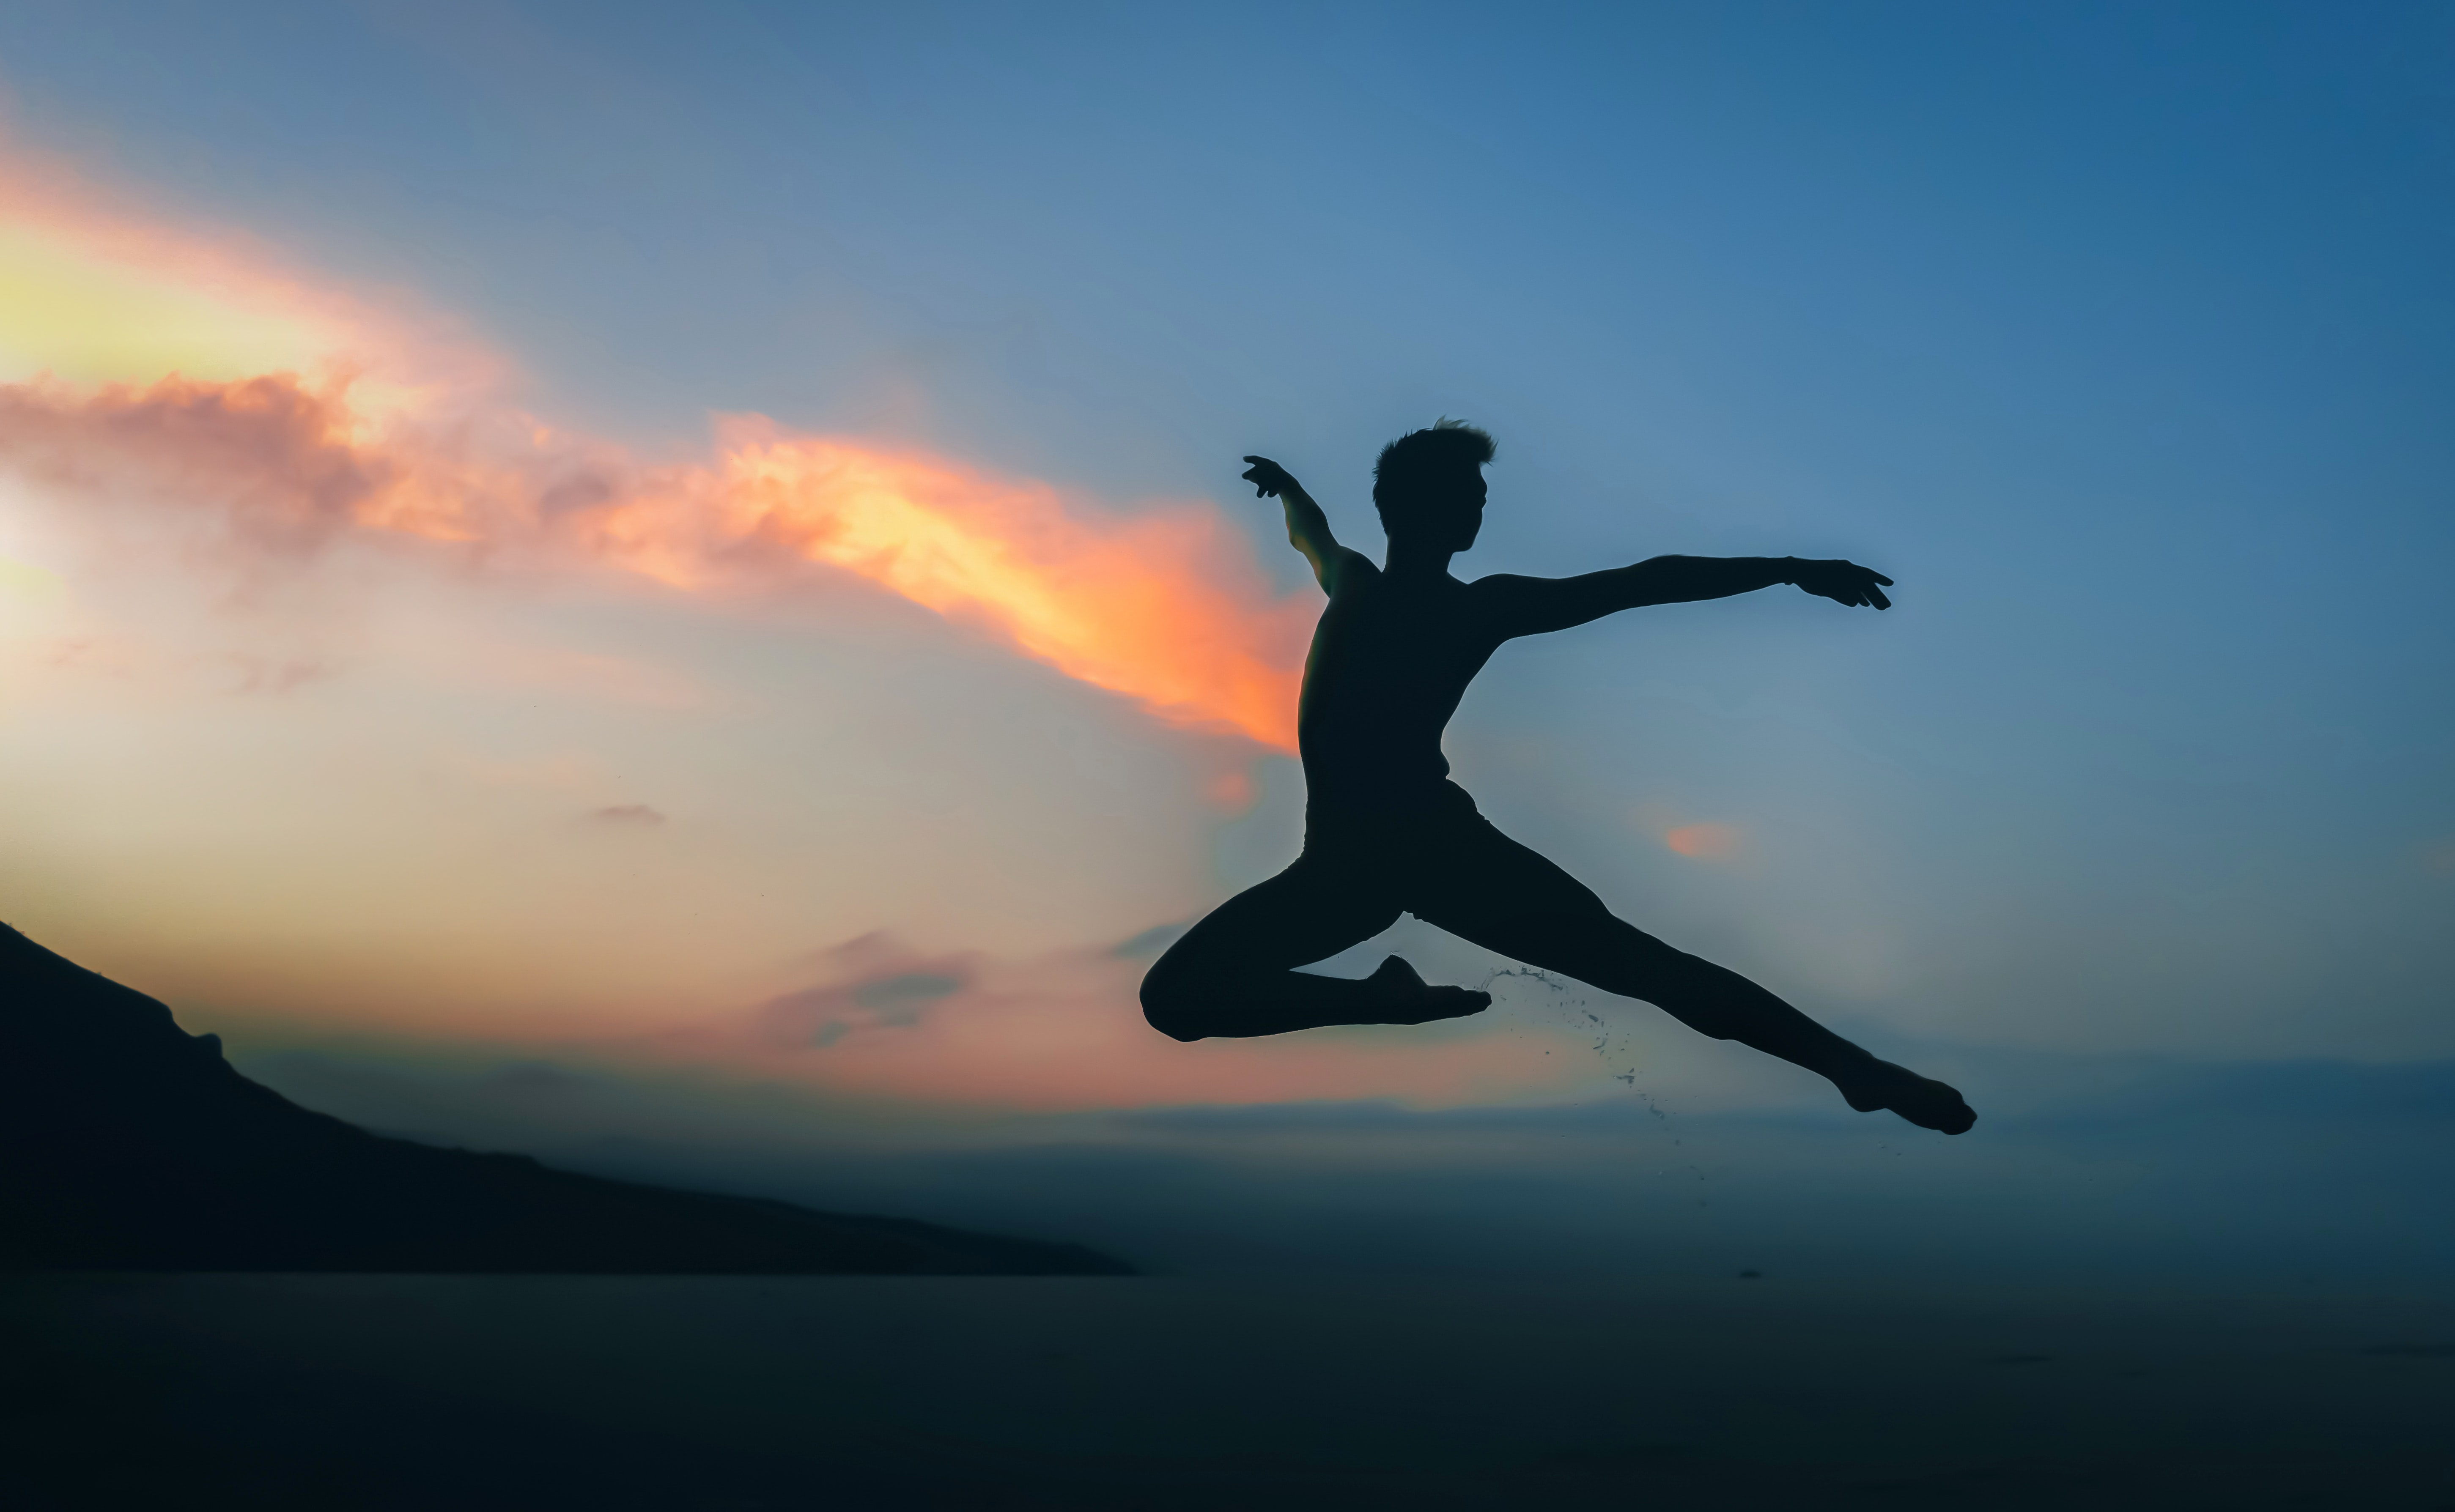 silhouette of man jumping doing ballet dance under golden hour